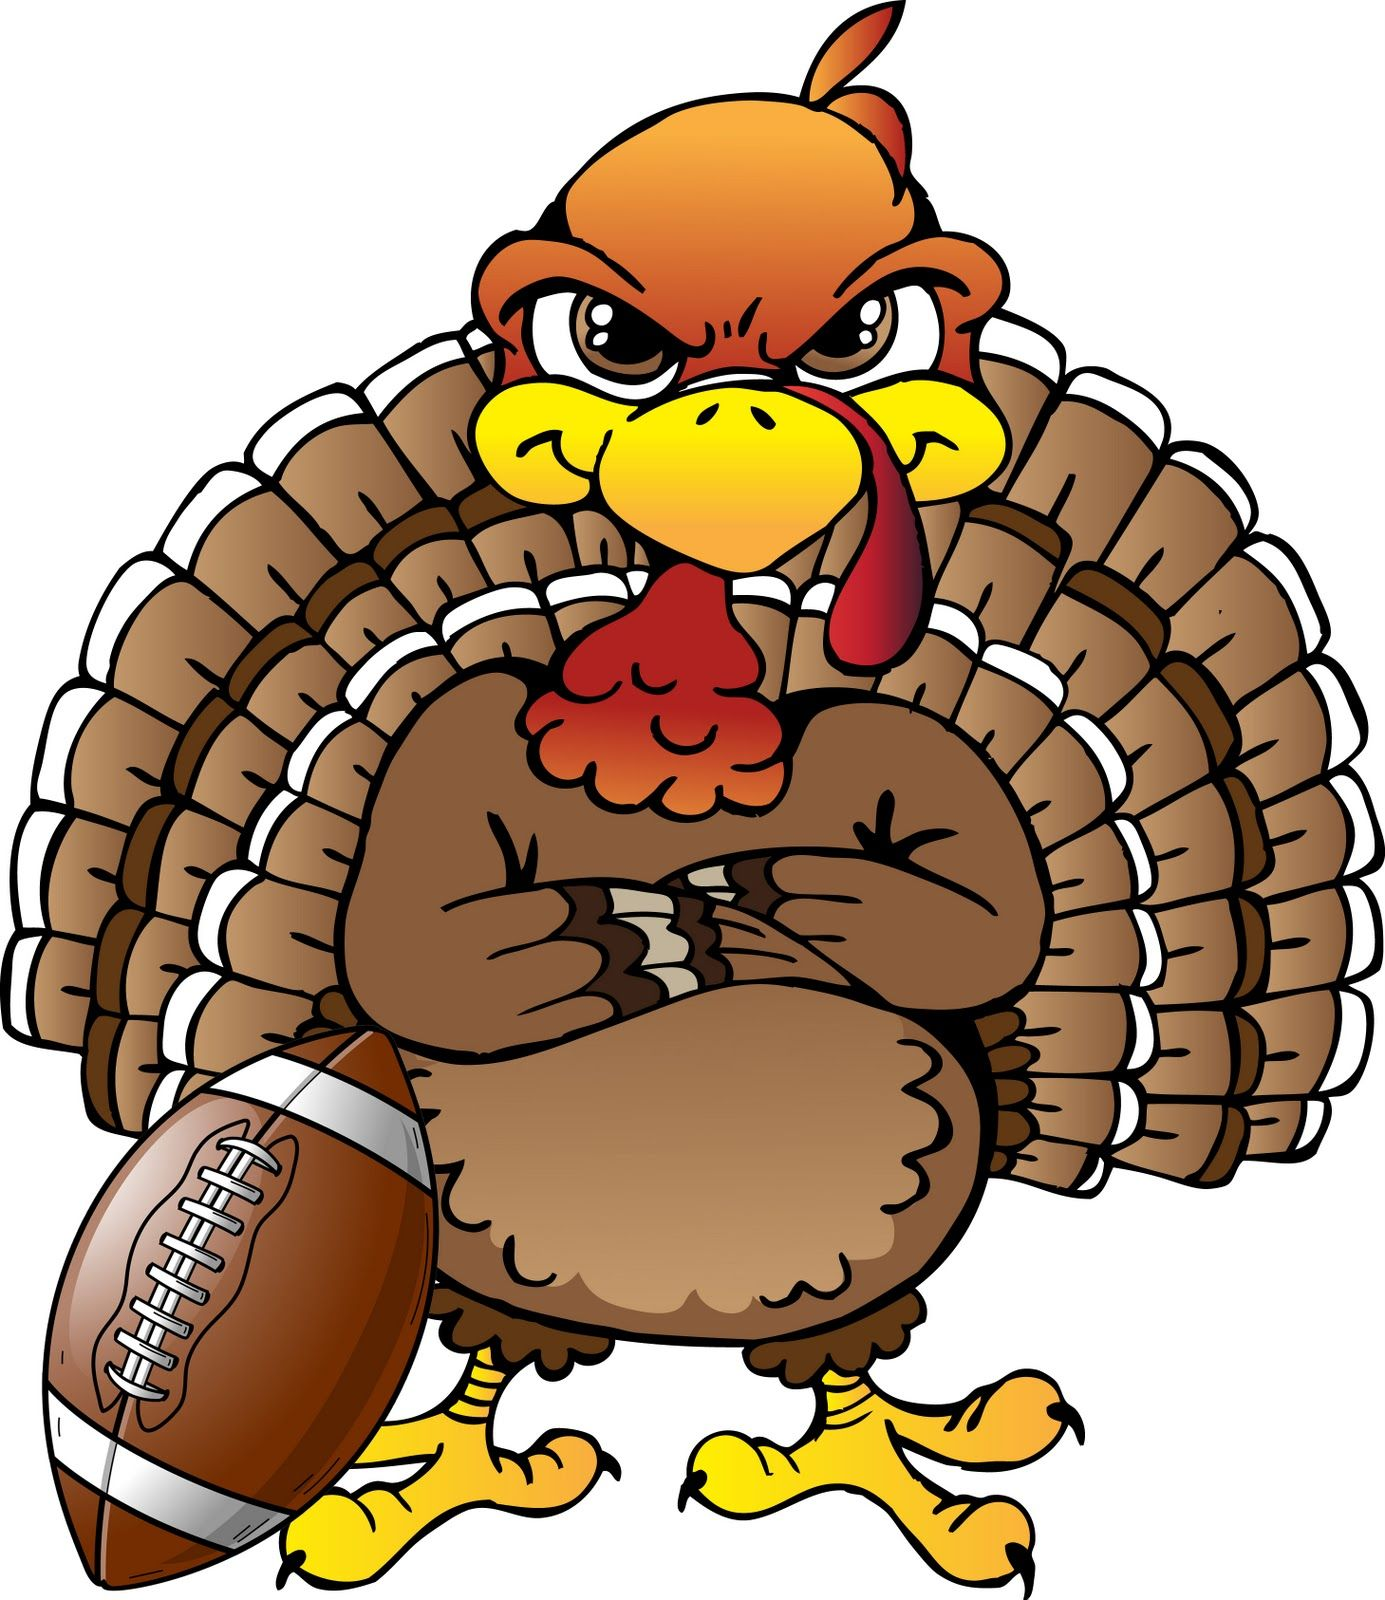 turkey day was mostly peaceful and fun allowing the bird to taste rh pinterest com funny turkey clipart free funny turkey clipart free